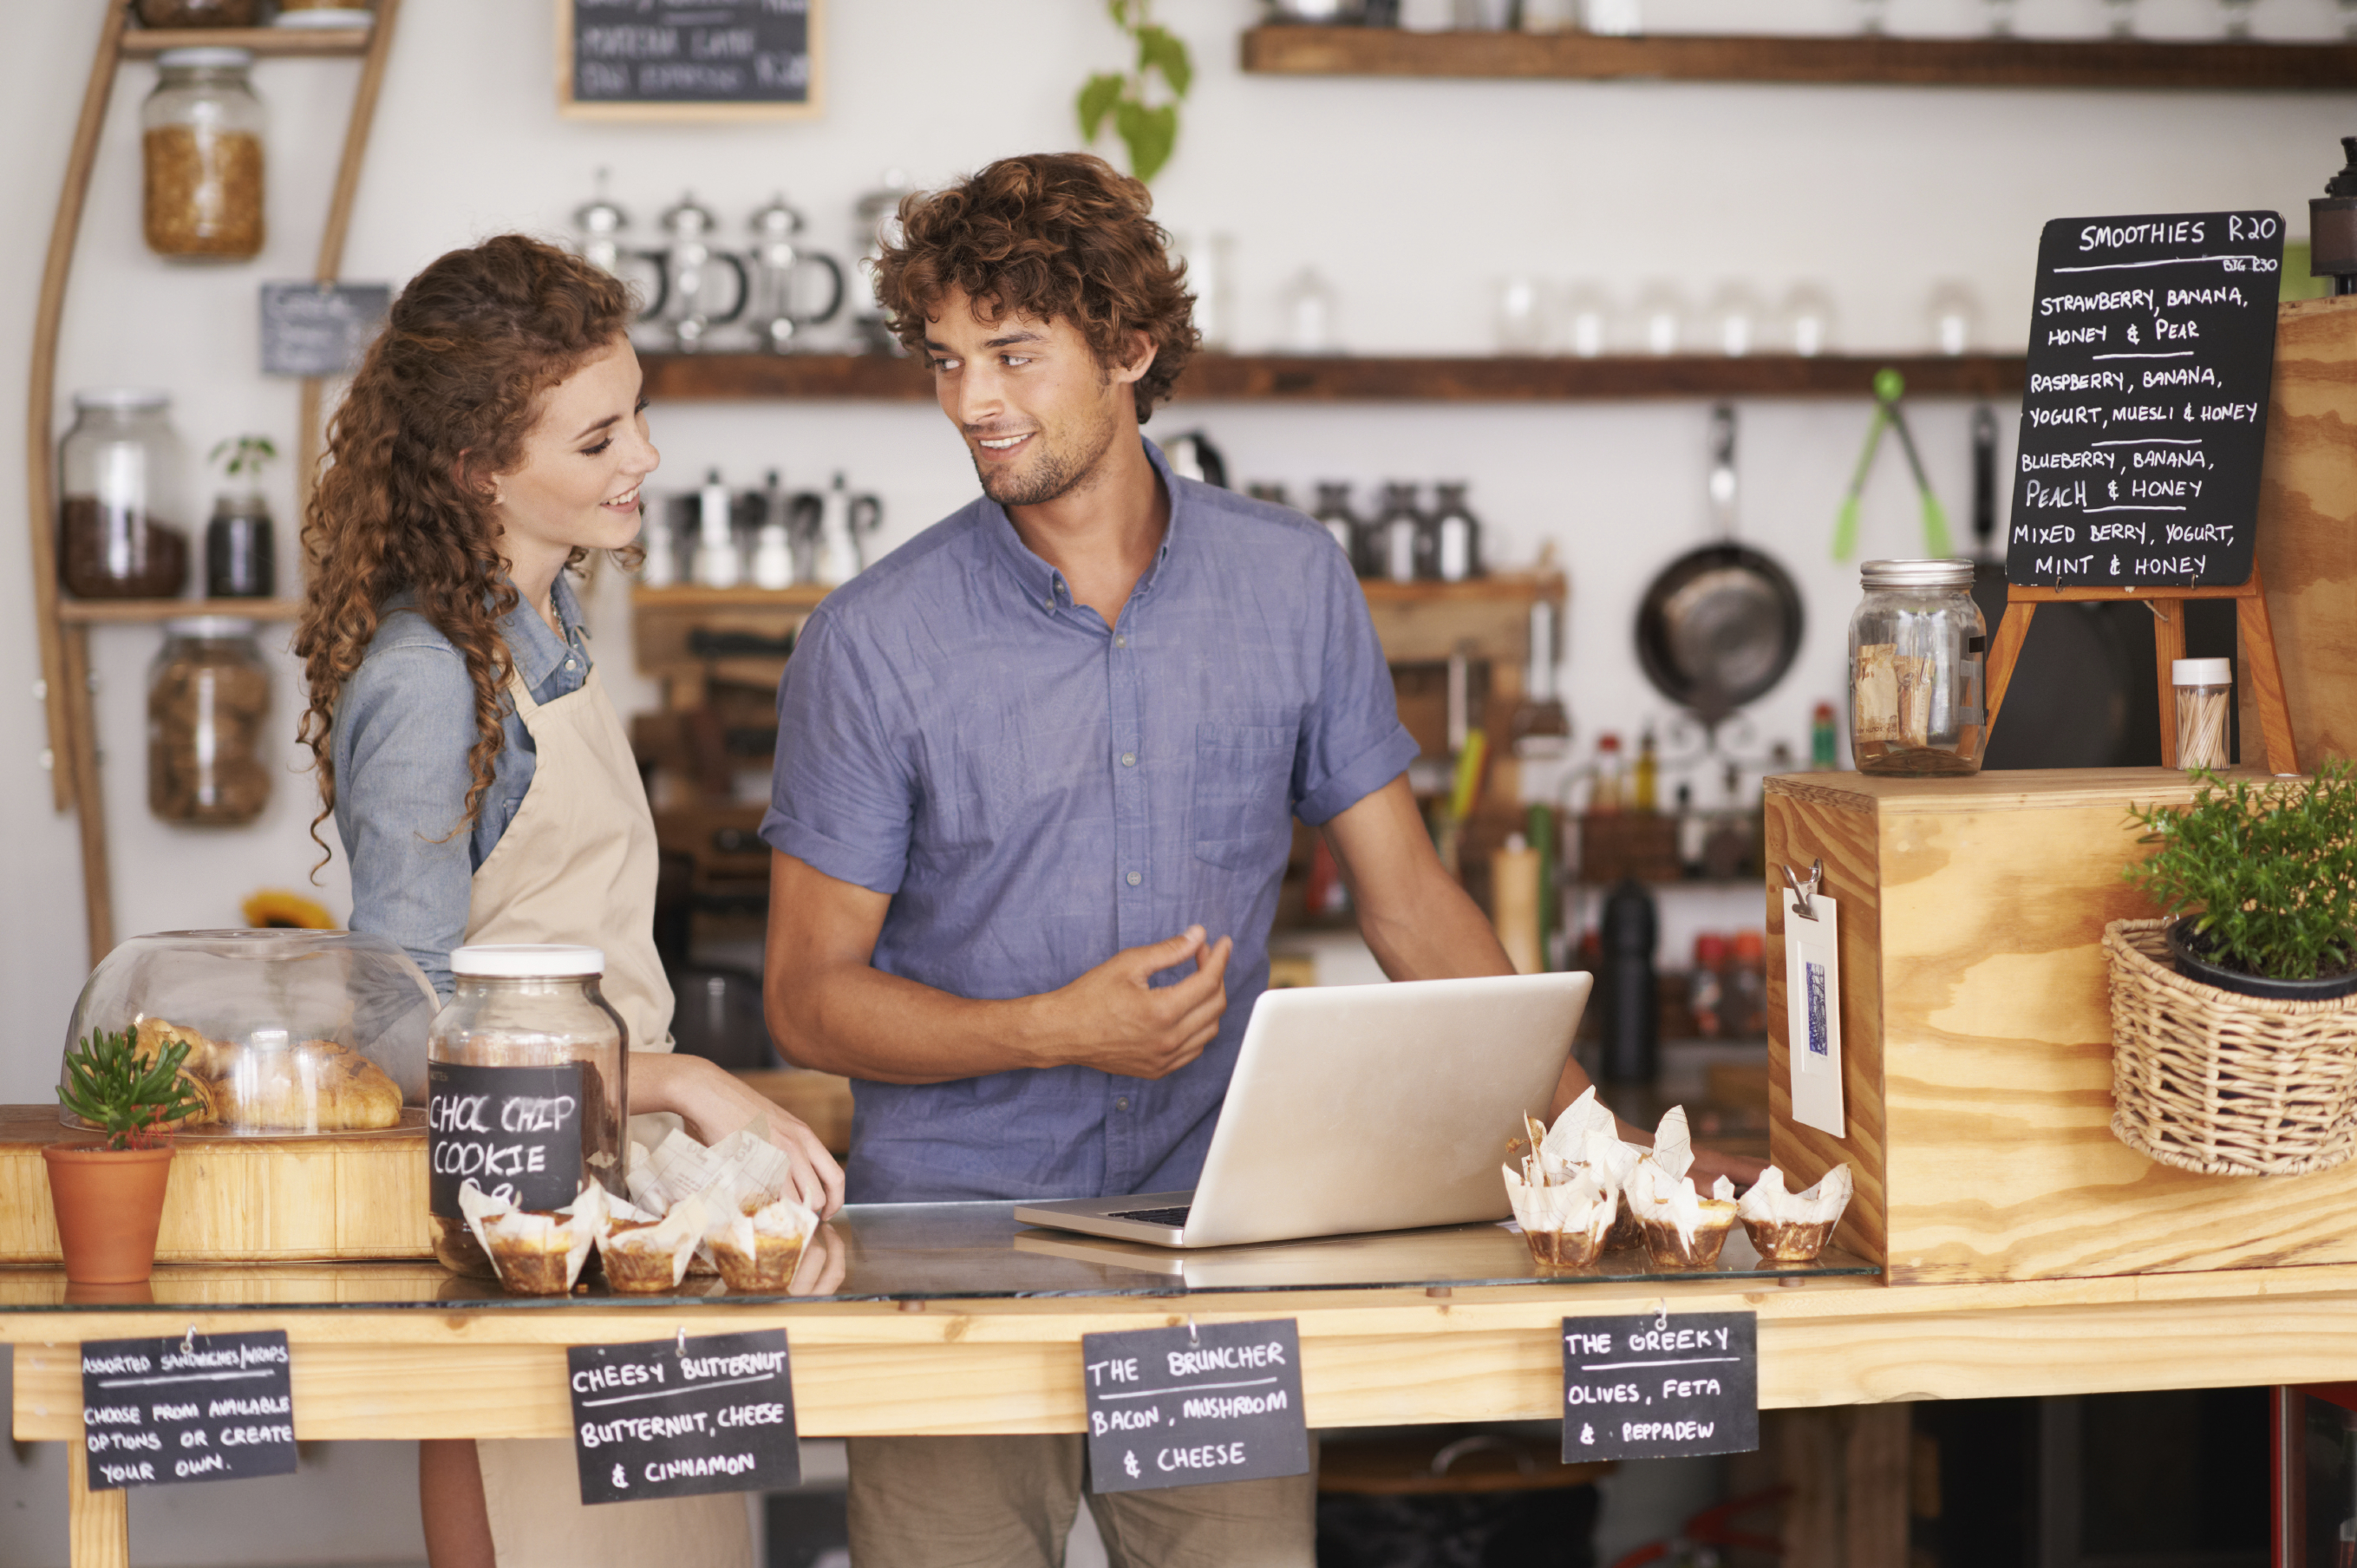 The Advantages of Outsourcing For Small Companies